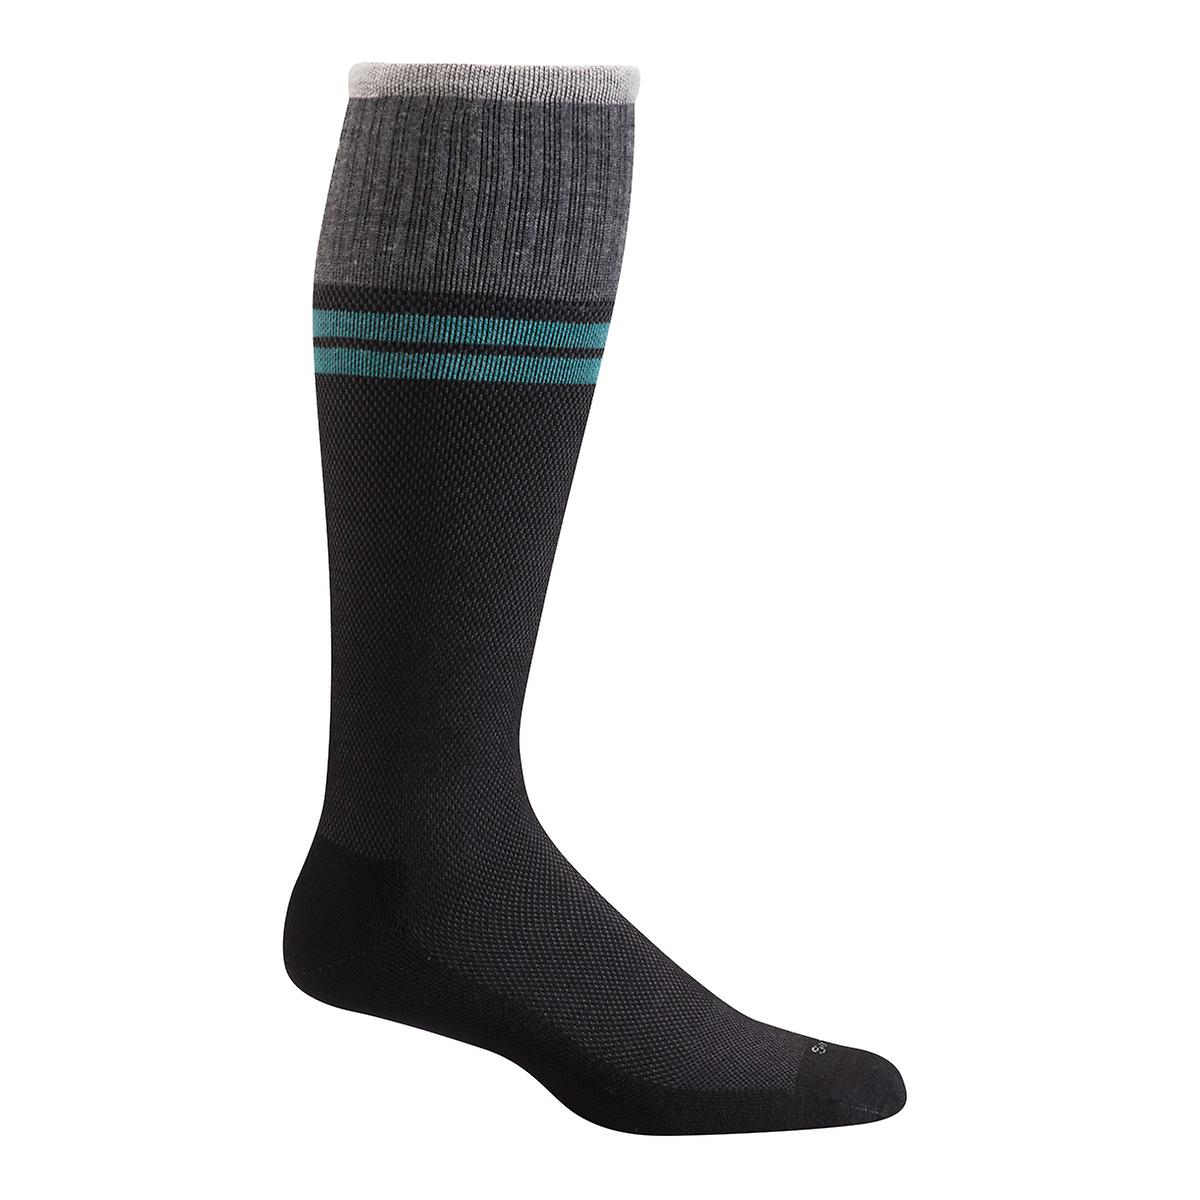 Large/X-Large Black Sportster Compression Socks